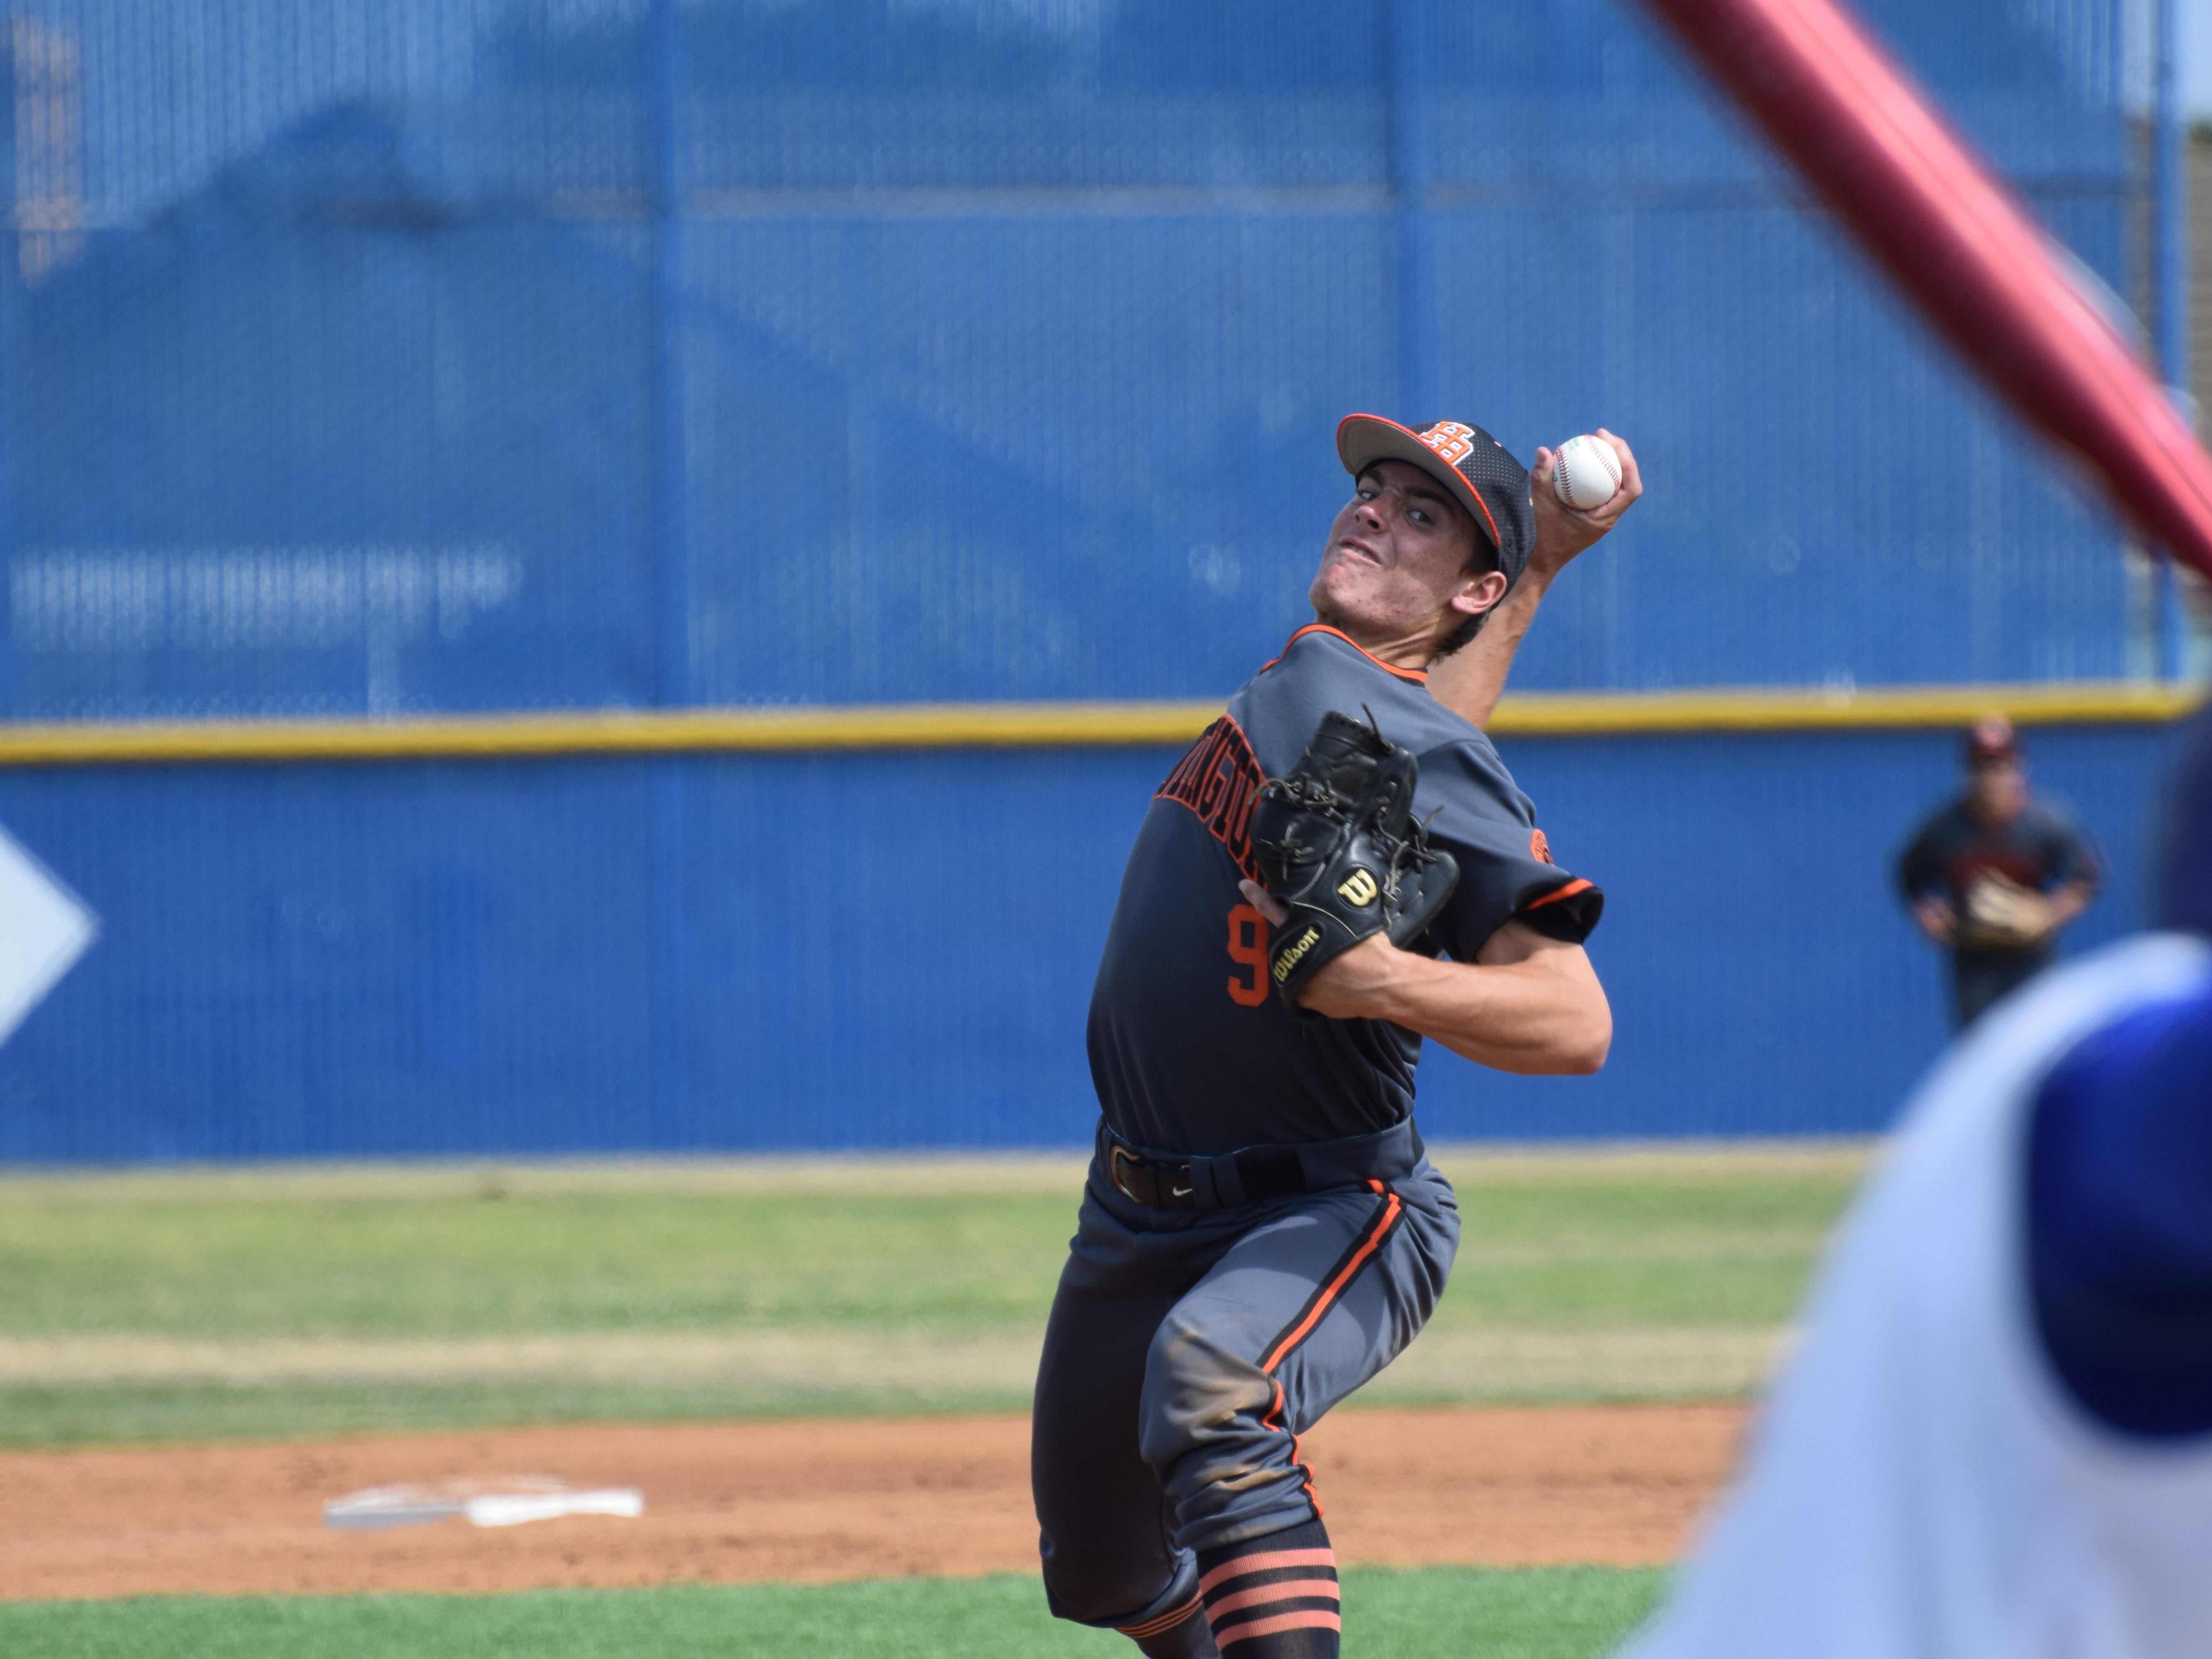 Hagen Danner, 16-year-old son of Madison grad Scott Danner, is one of the top young pitching prospects in the nation.